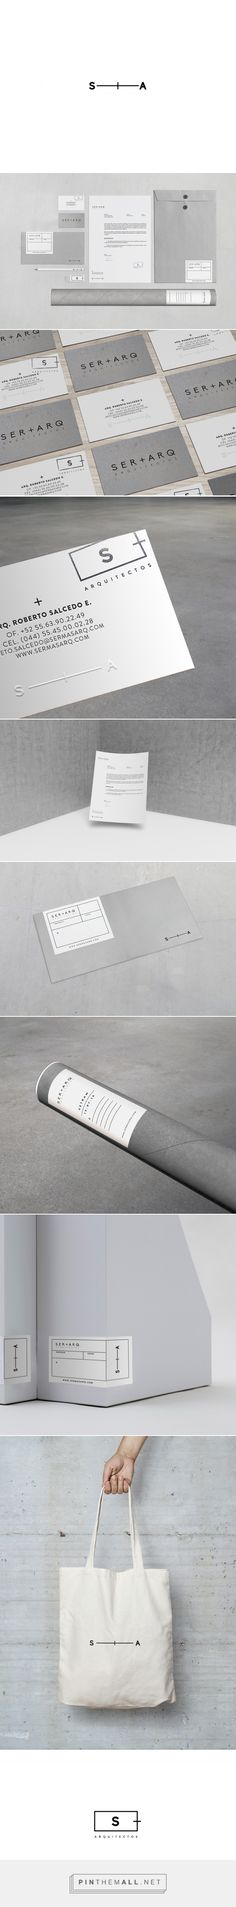 SER+ARQ Architect Branding by Karla Heredia Martinez | Fivestar Branding Agency – Design and Branding Agency & Curated Inspiration Gallery